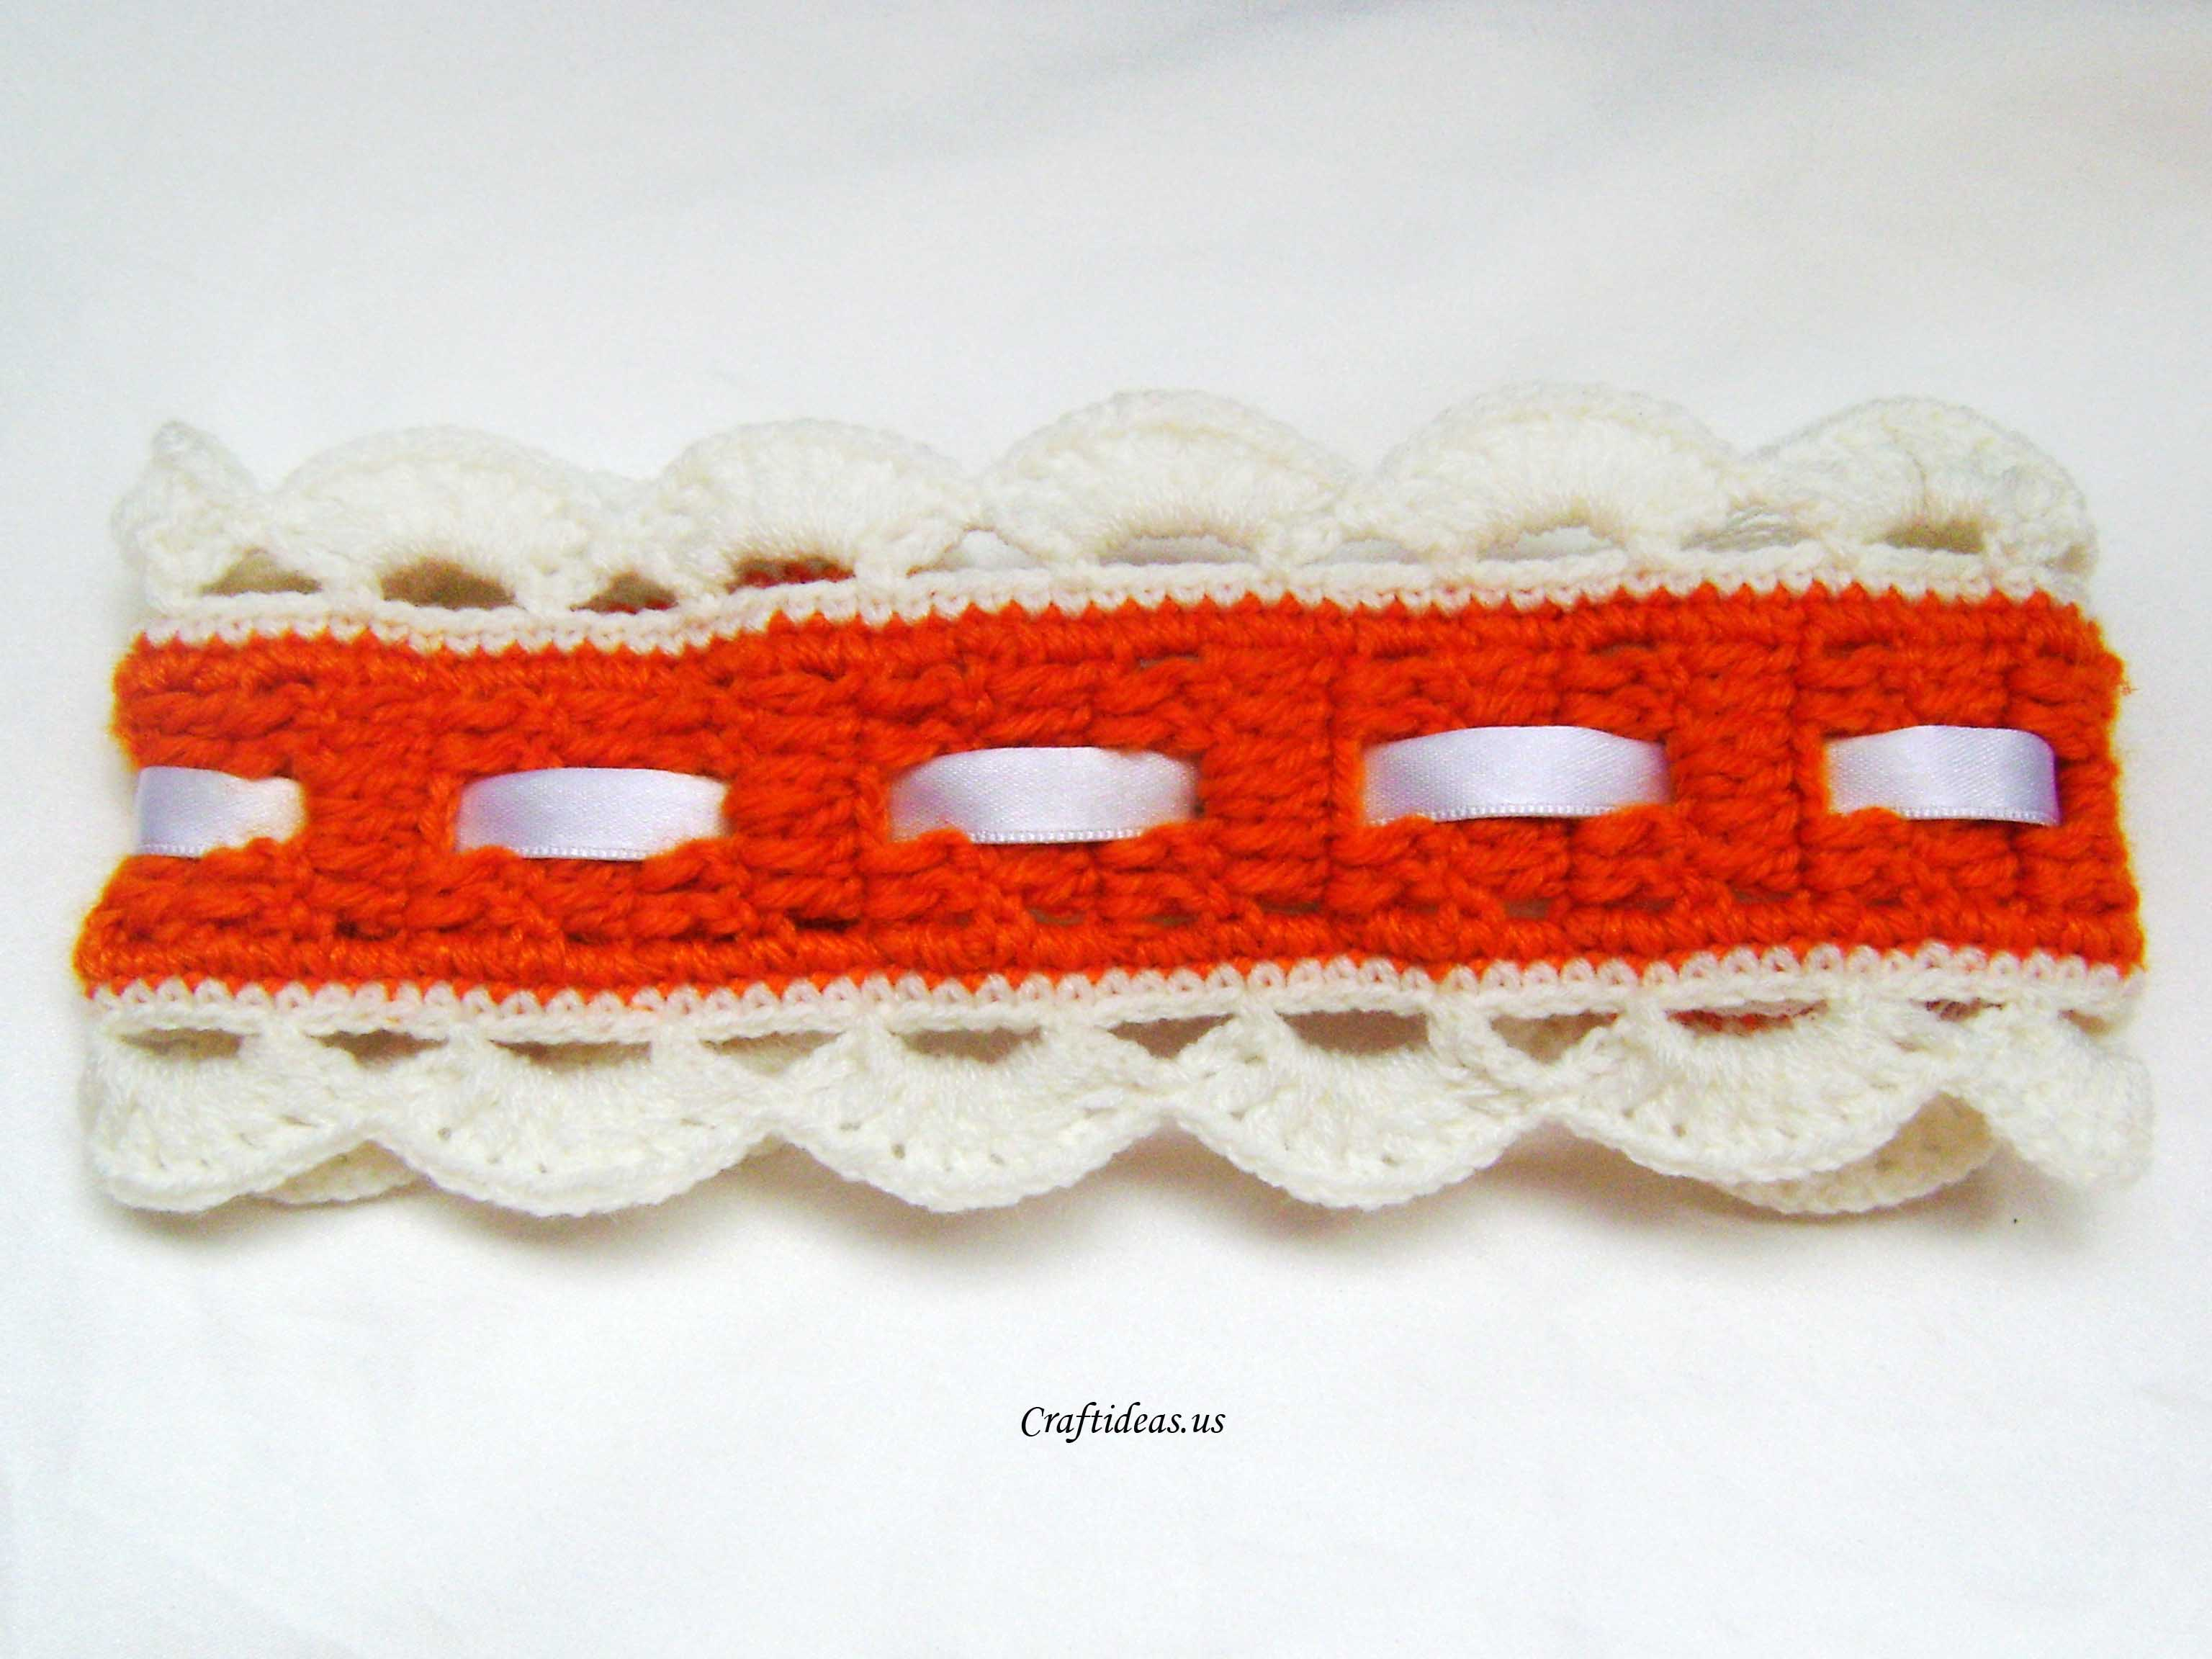 Crochet orange headband craft ideas crochet orange headband baditri Image collections